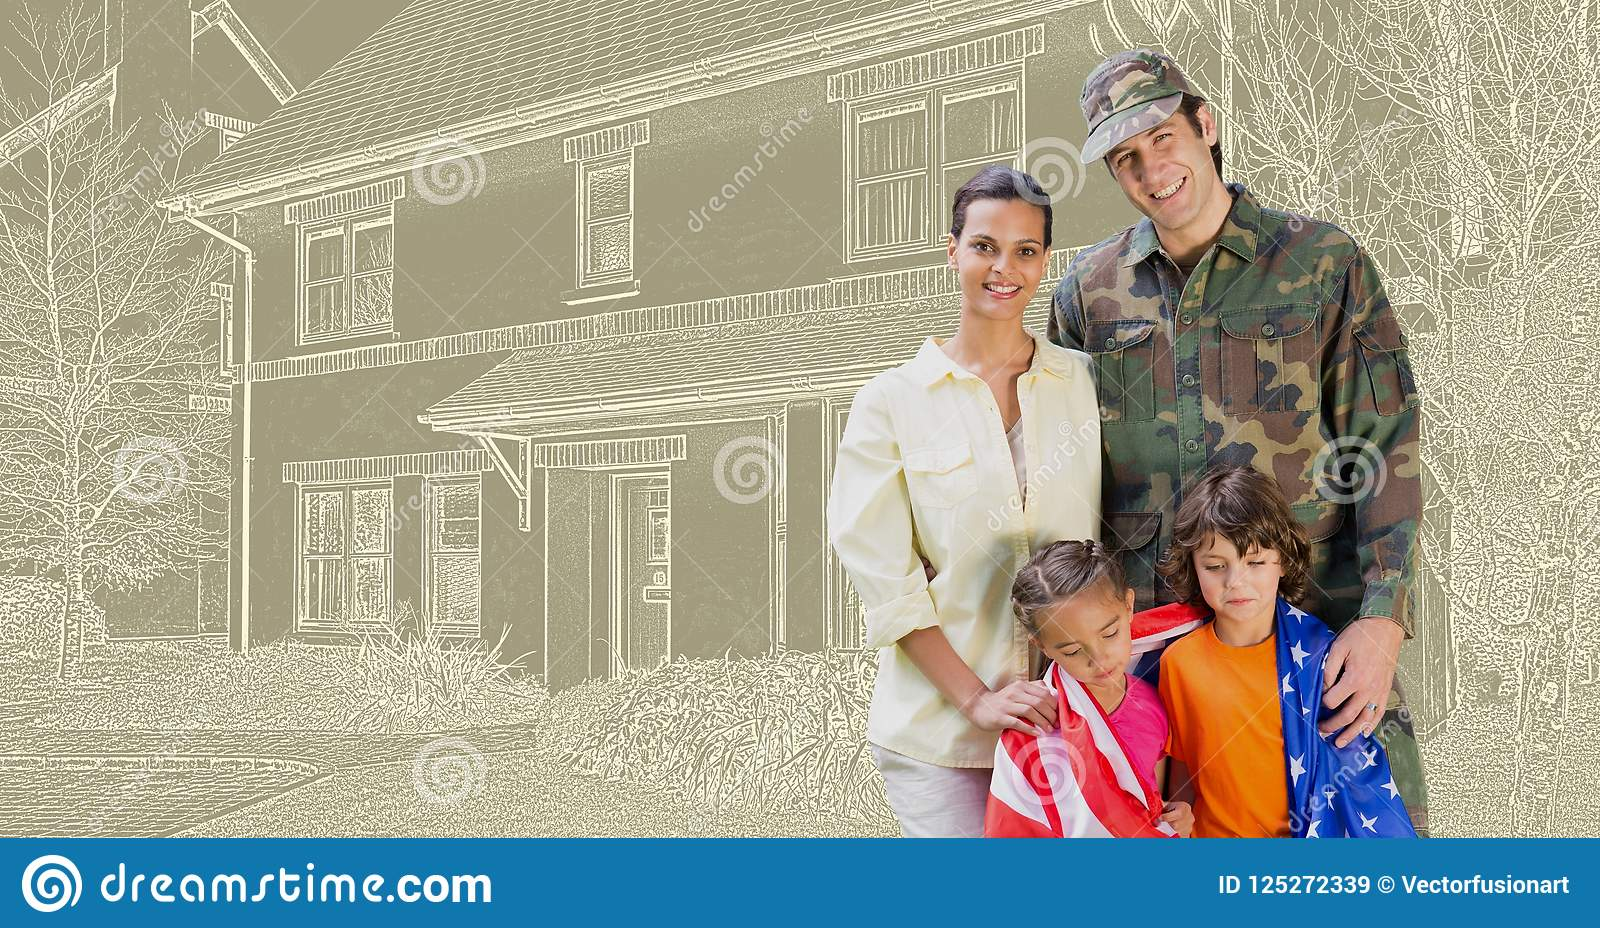 Military soldier family in front of house drawing sketch